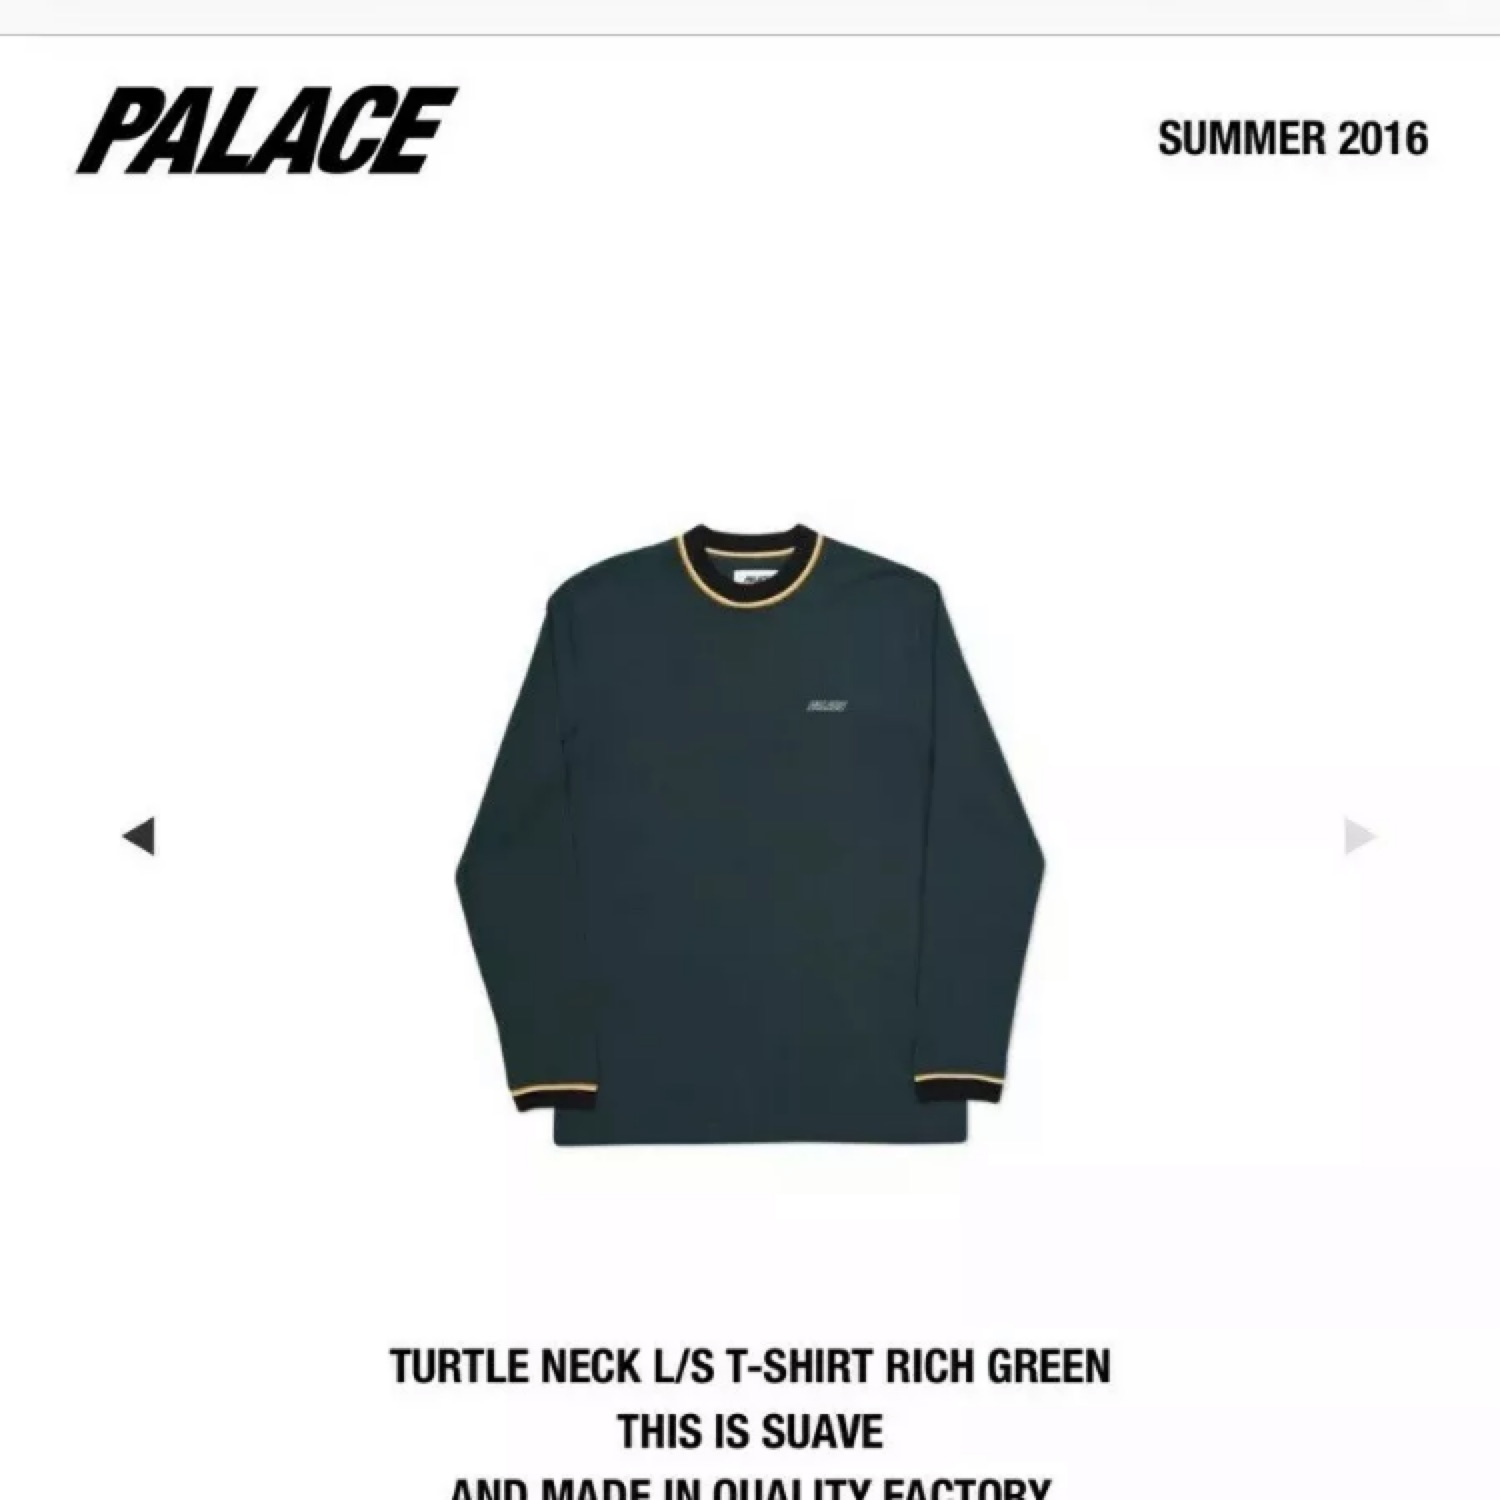 Palace Turtle Neck L/S Tee